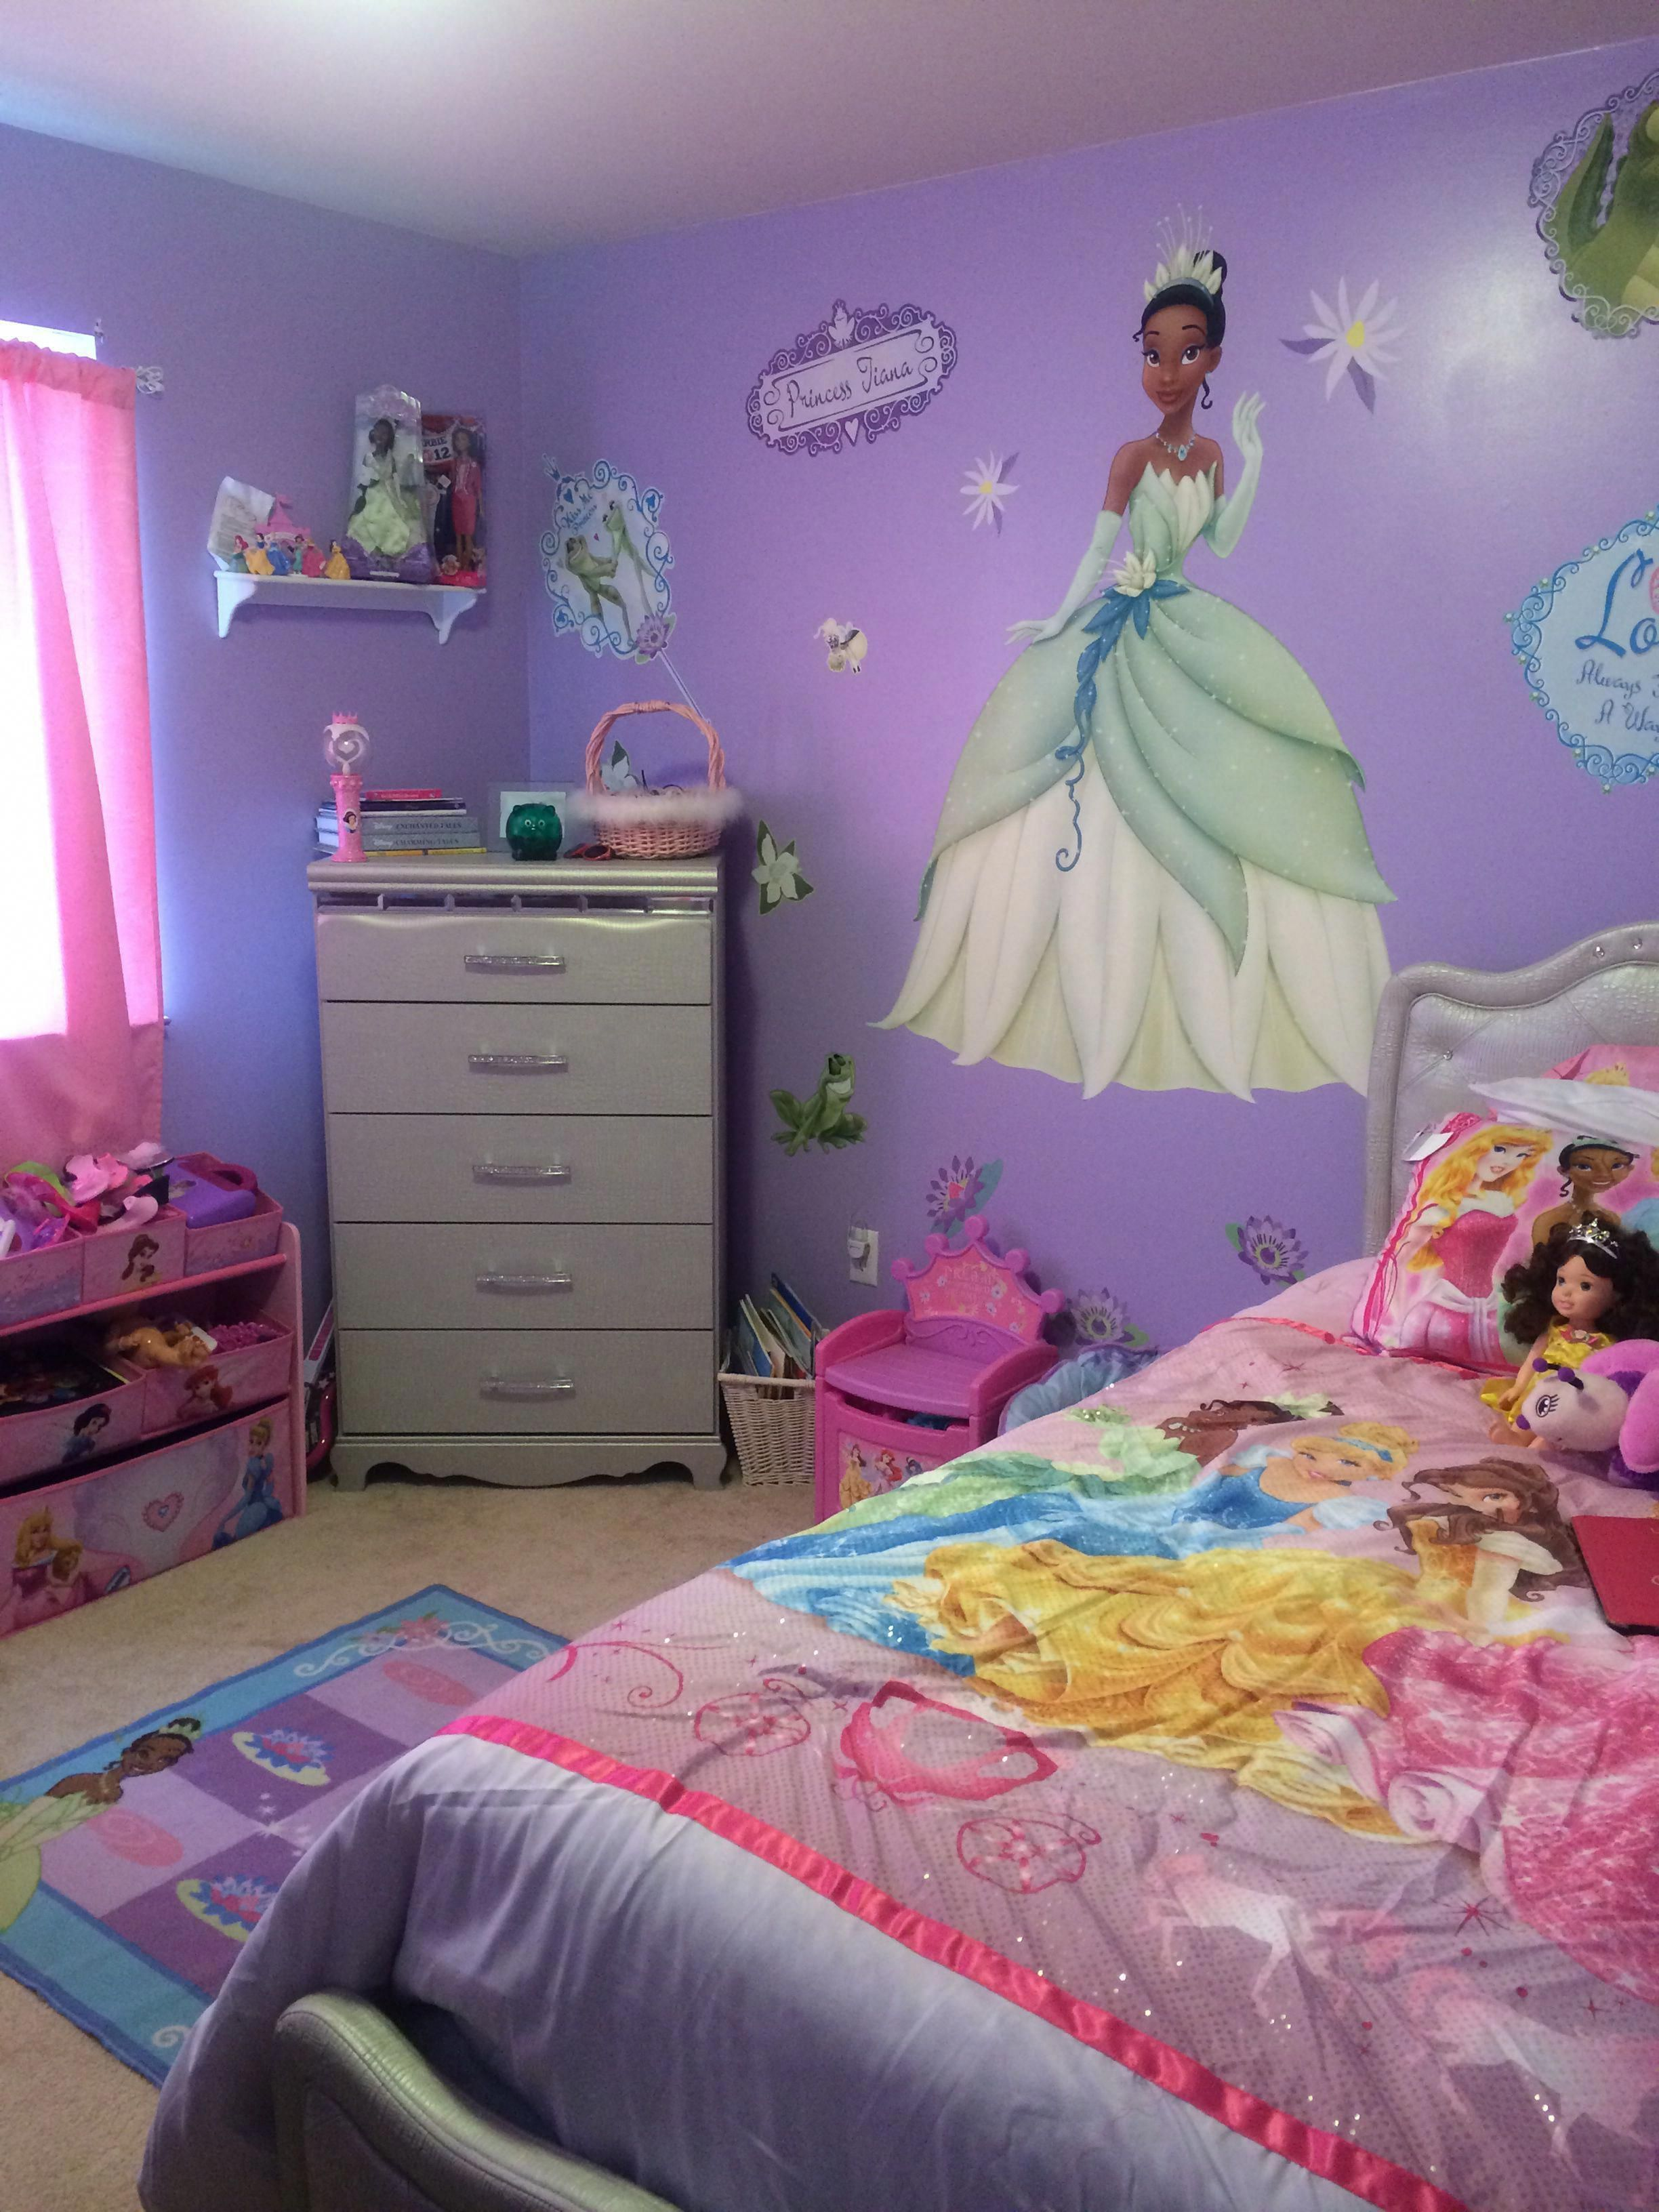 Cute Kid Bedrooms Decorating Ideas Check Out The Suggestions To Form A Really Adorable Kid Bedr Princess Bedroom Decor Princess Bedrooms Disney Princess Room